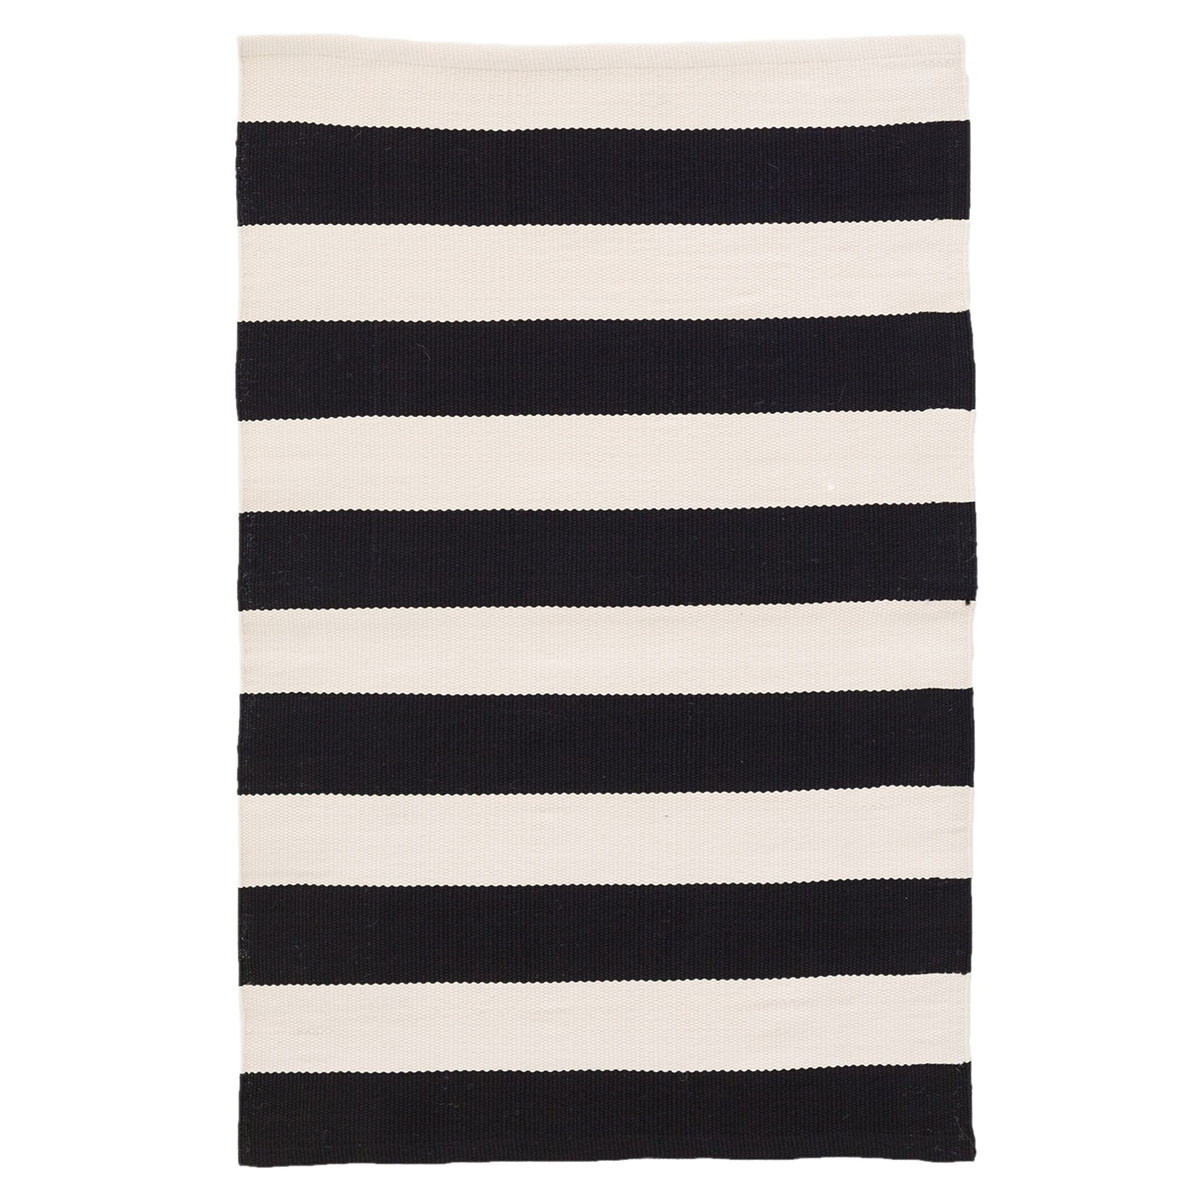 Similar striped rug from Wisteria